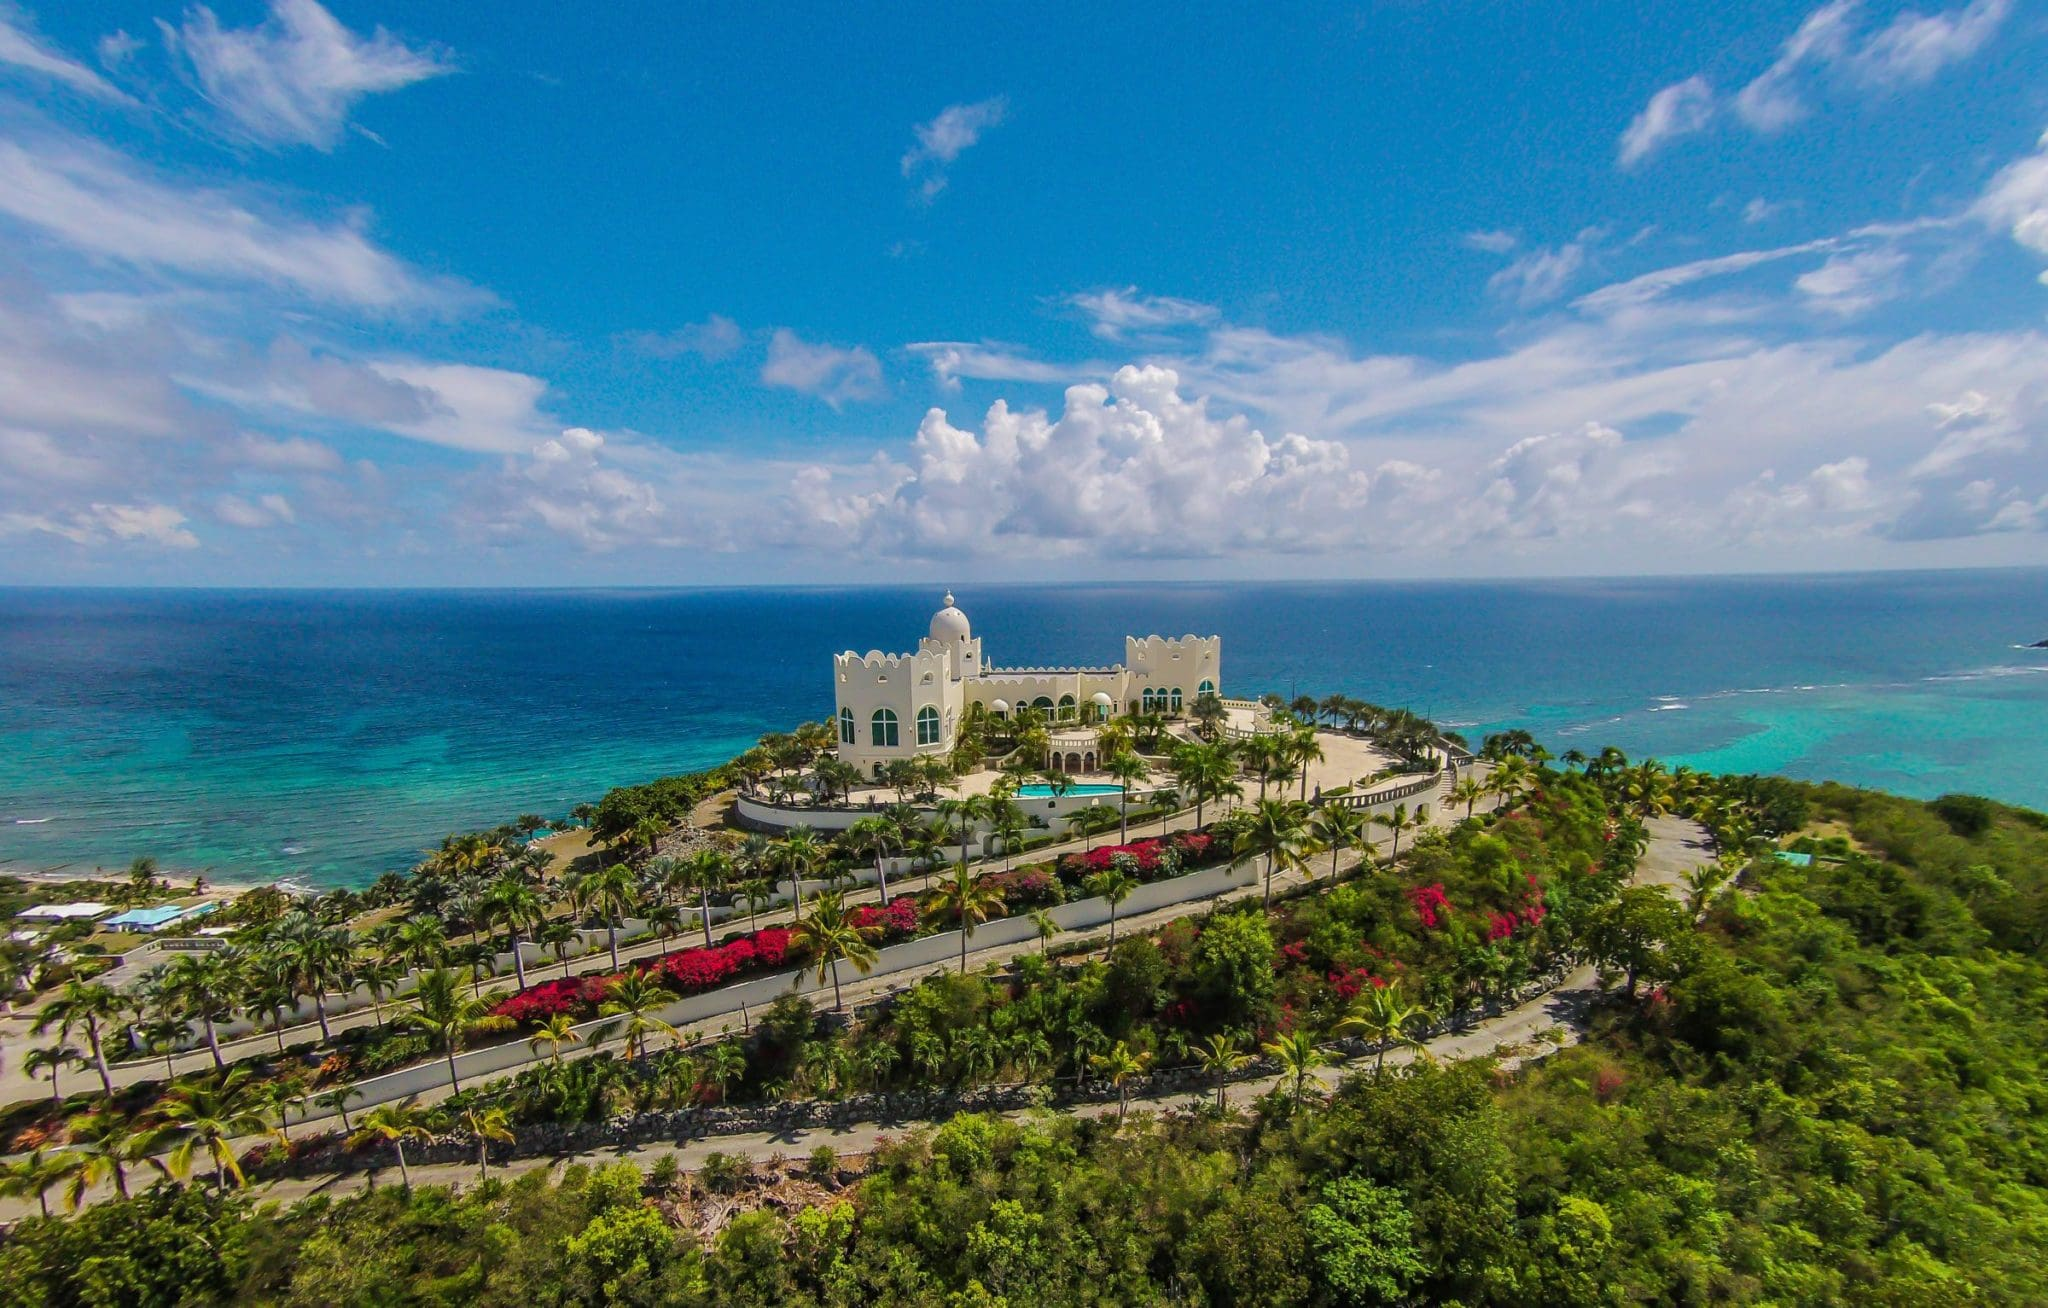 Own Your Own Fairytale Castle in the Caribbean